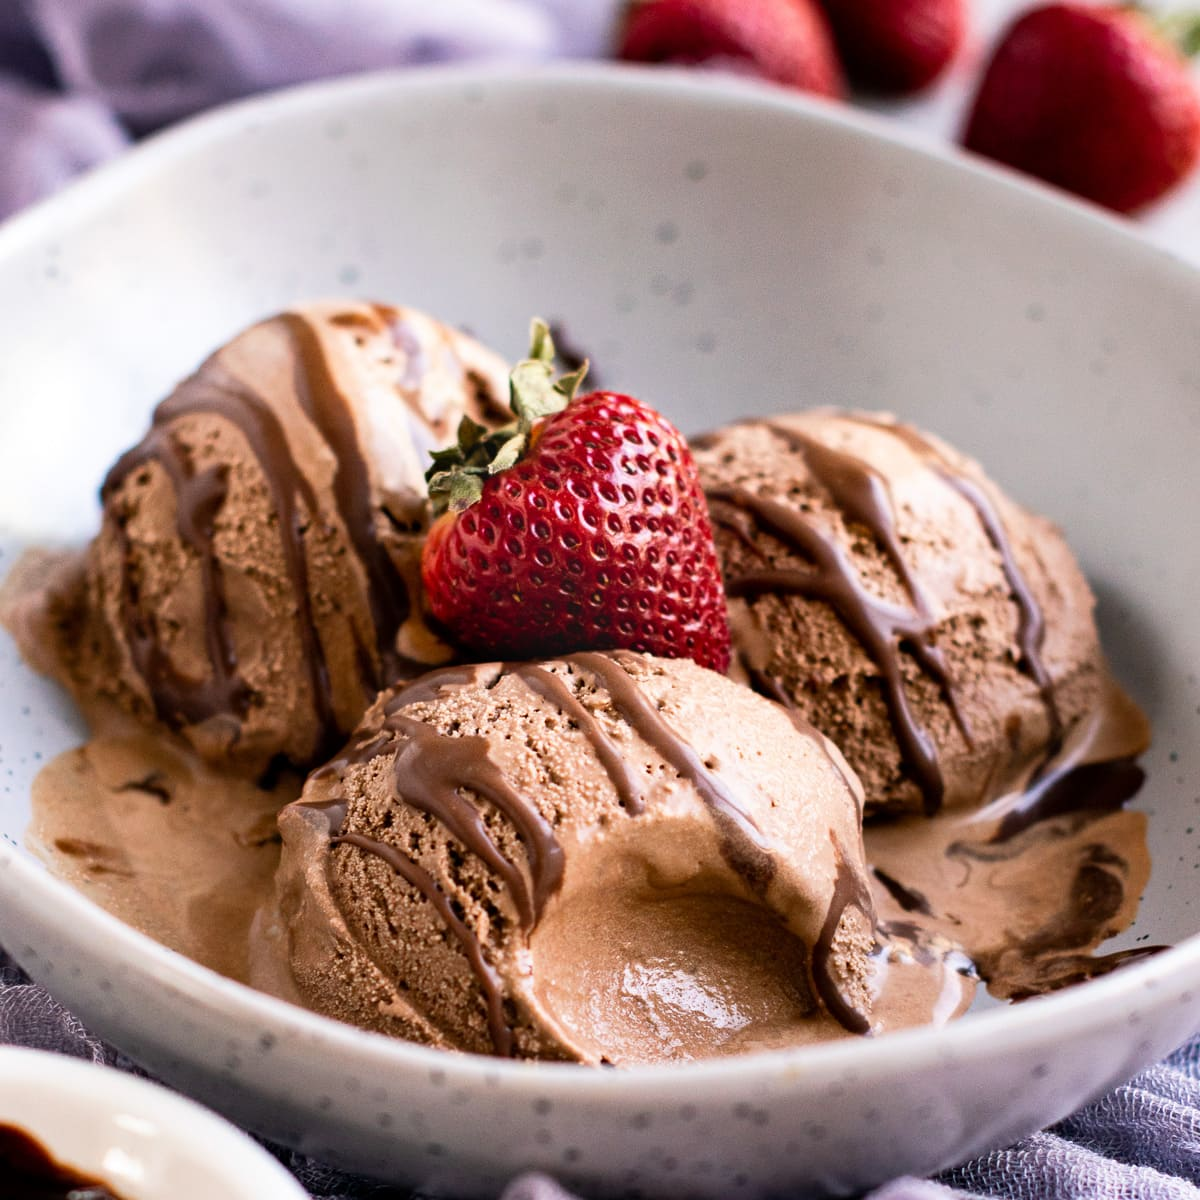 Cuisinart chocolate ice cream in a bowl with strawberry on the top